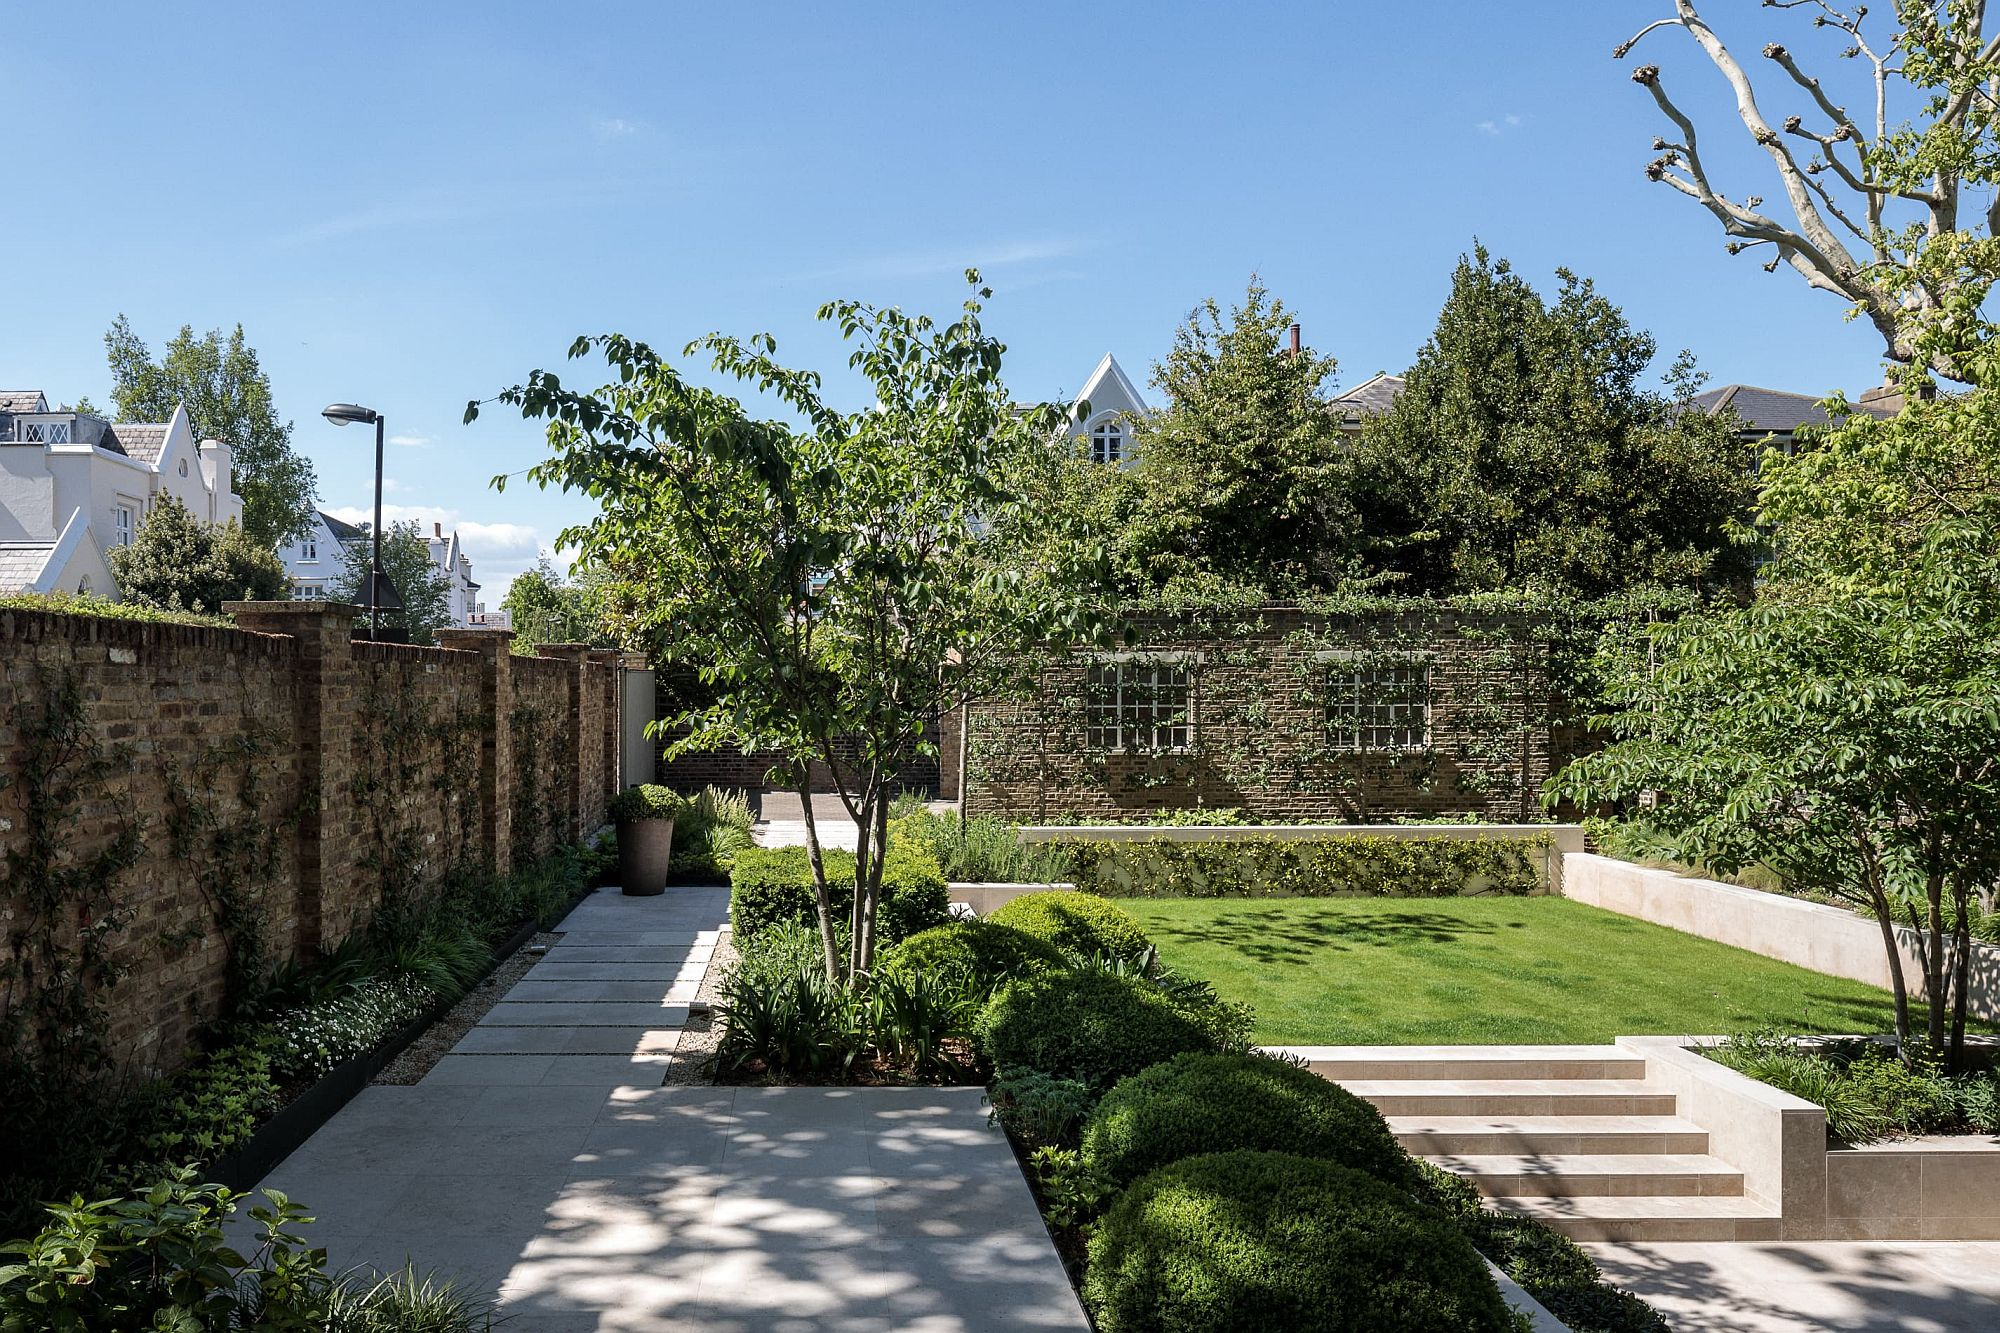 Multi-level gardens with a curated landscape add to the appeal of the house